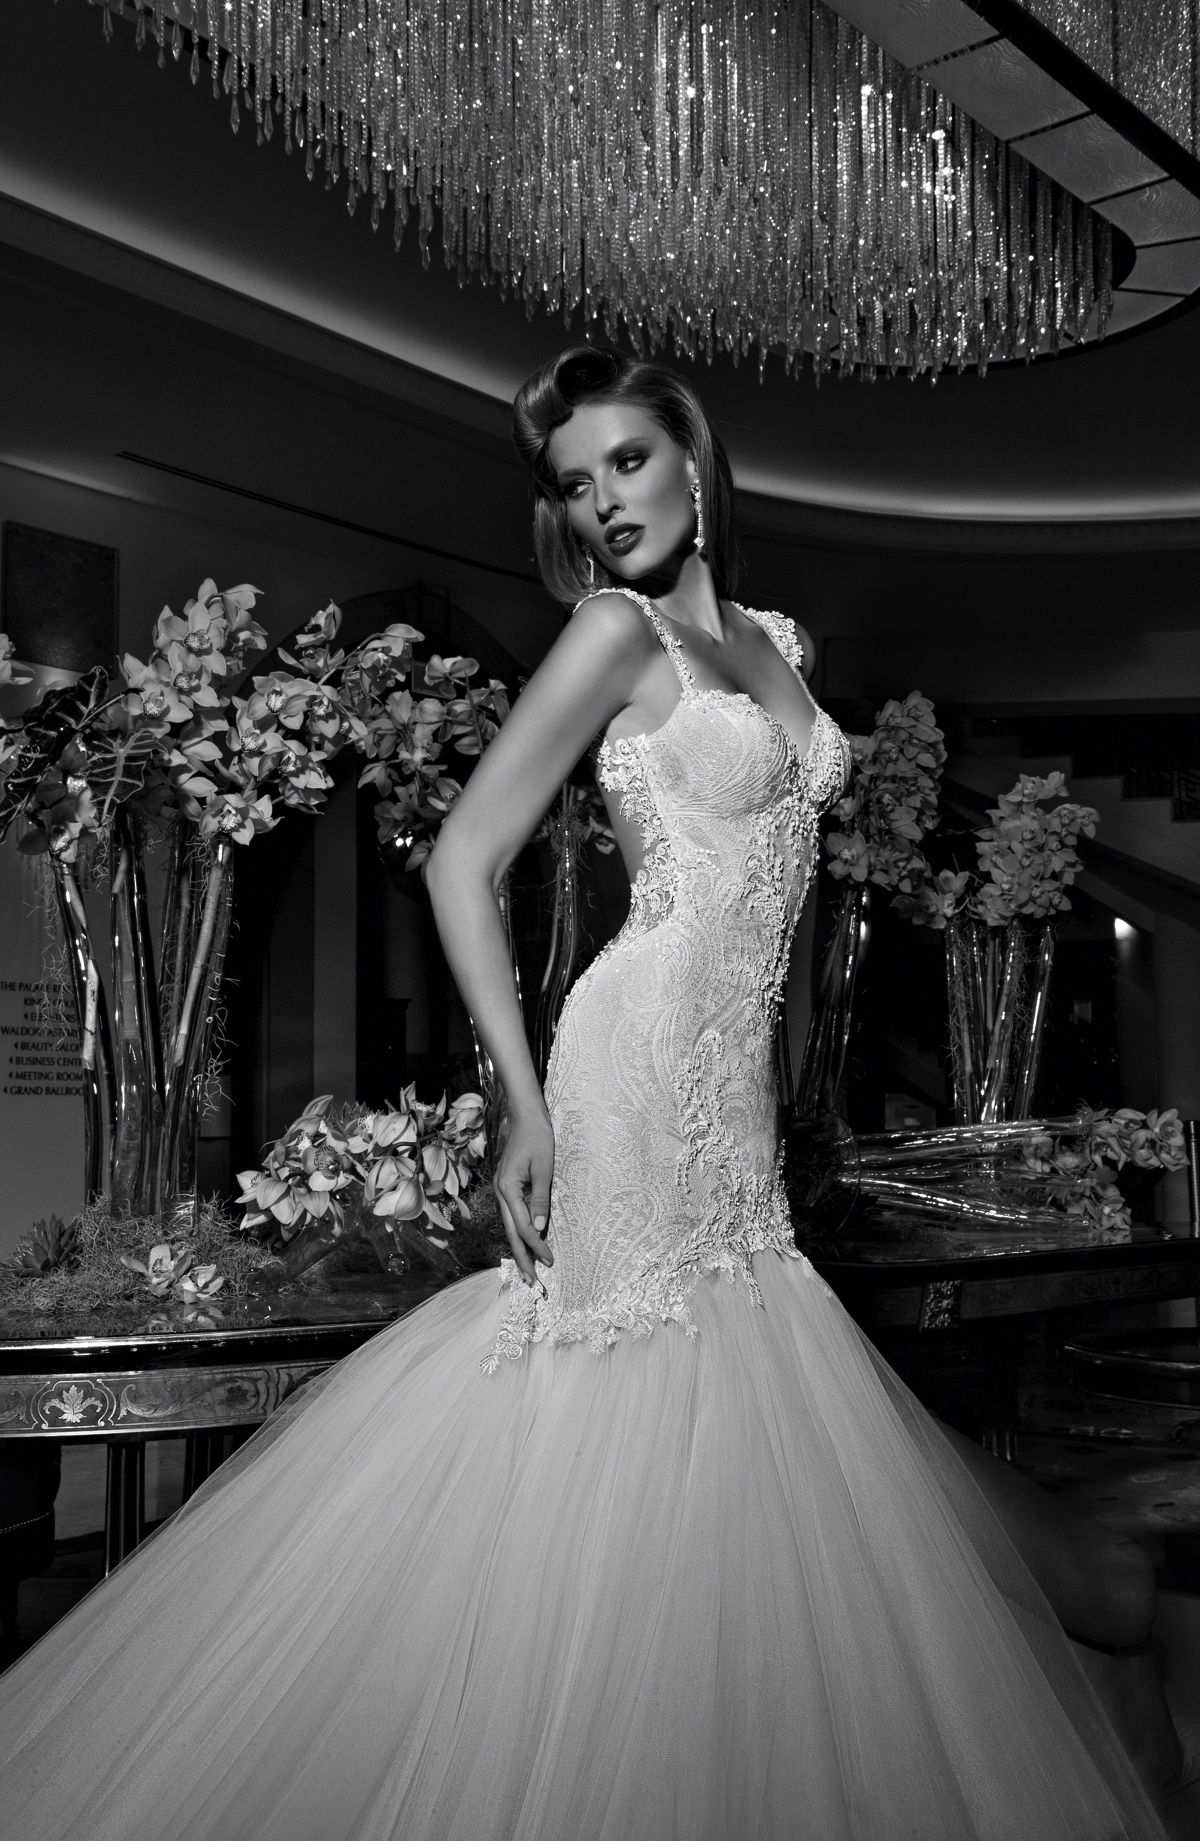 Strictly Weddings Gives You A First Look At Renowned Fashion Designer Galia Lahavs Haute Couture Bridal Dresses With Her Gorgeous 2015 Collection